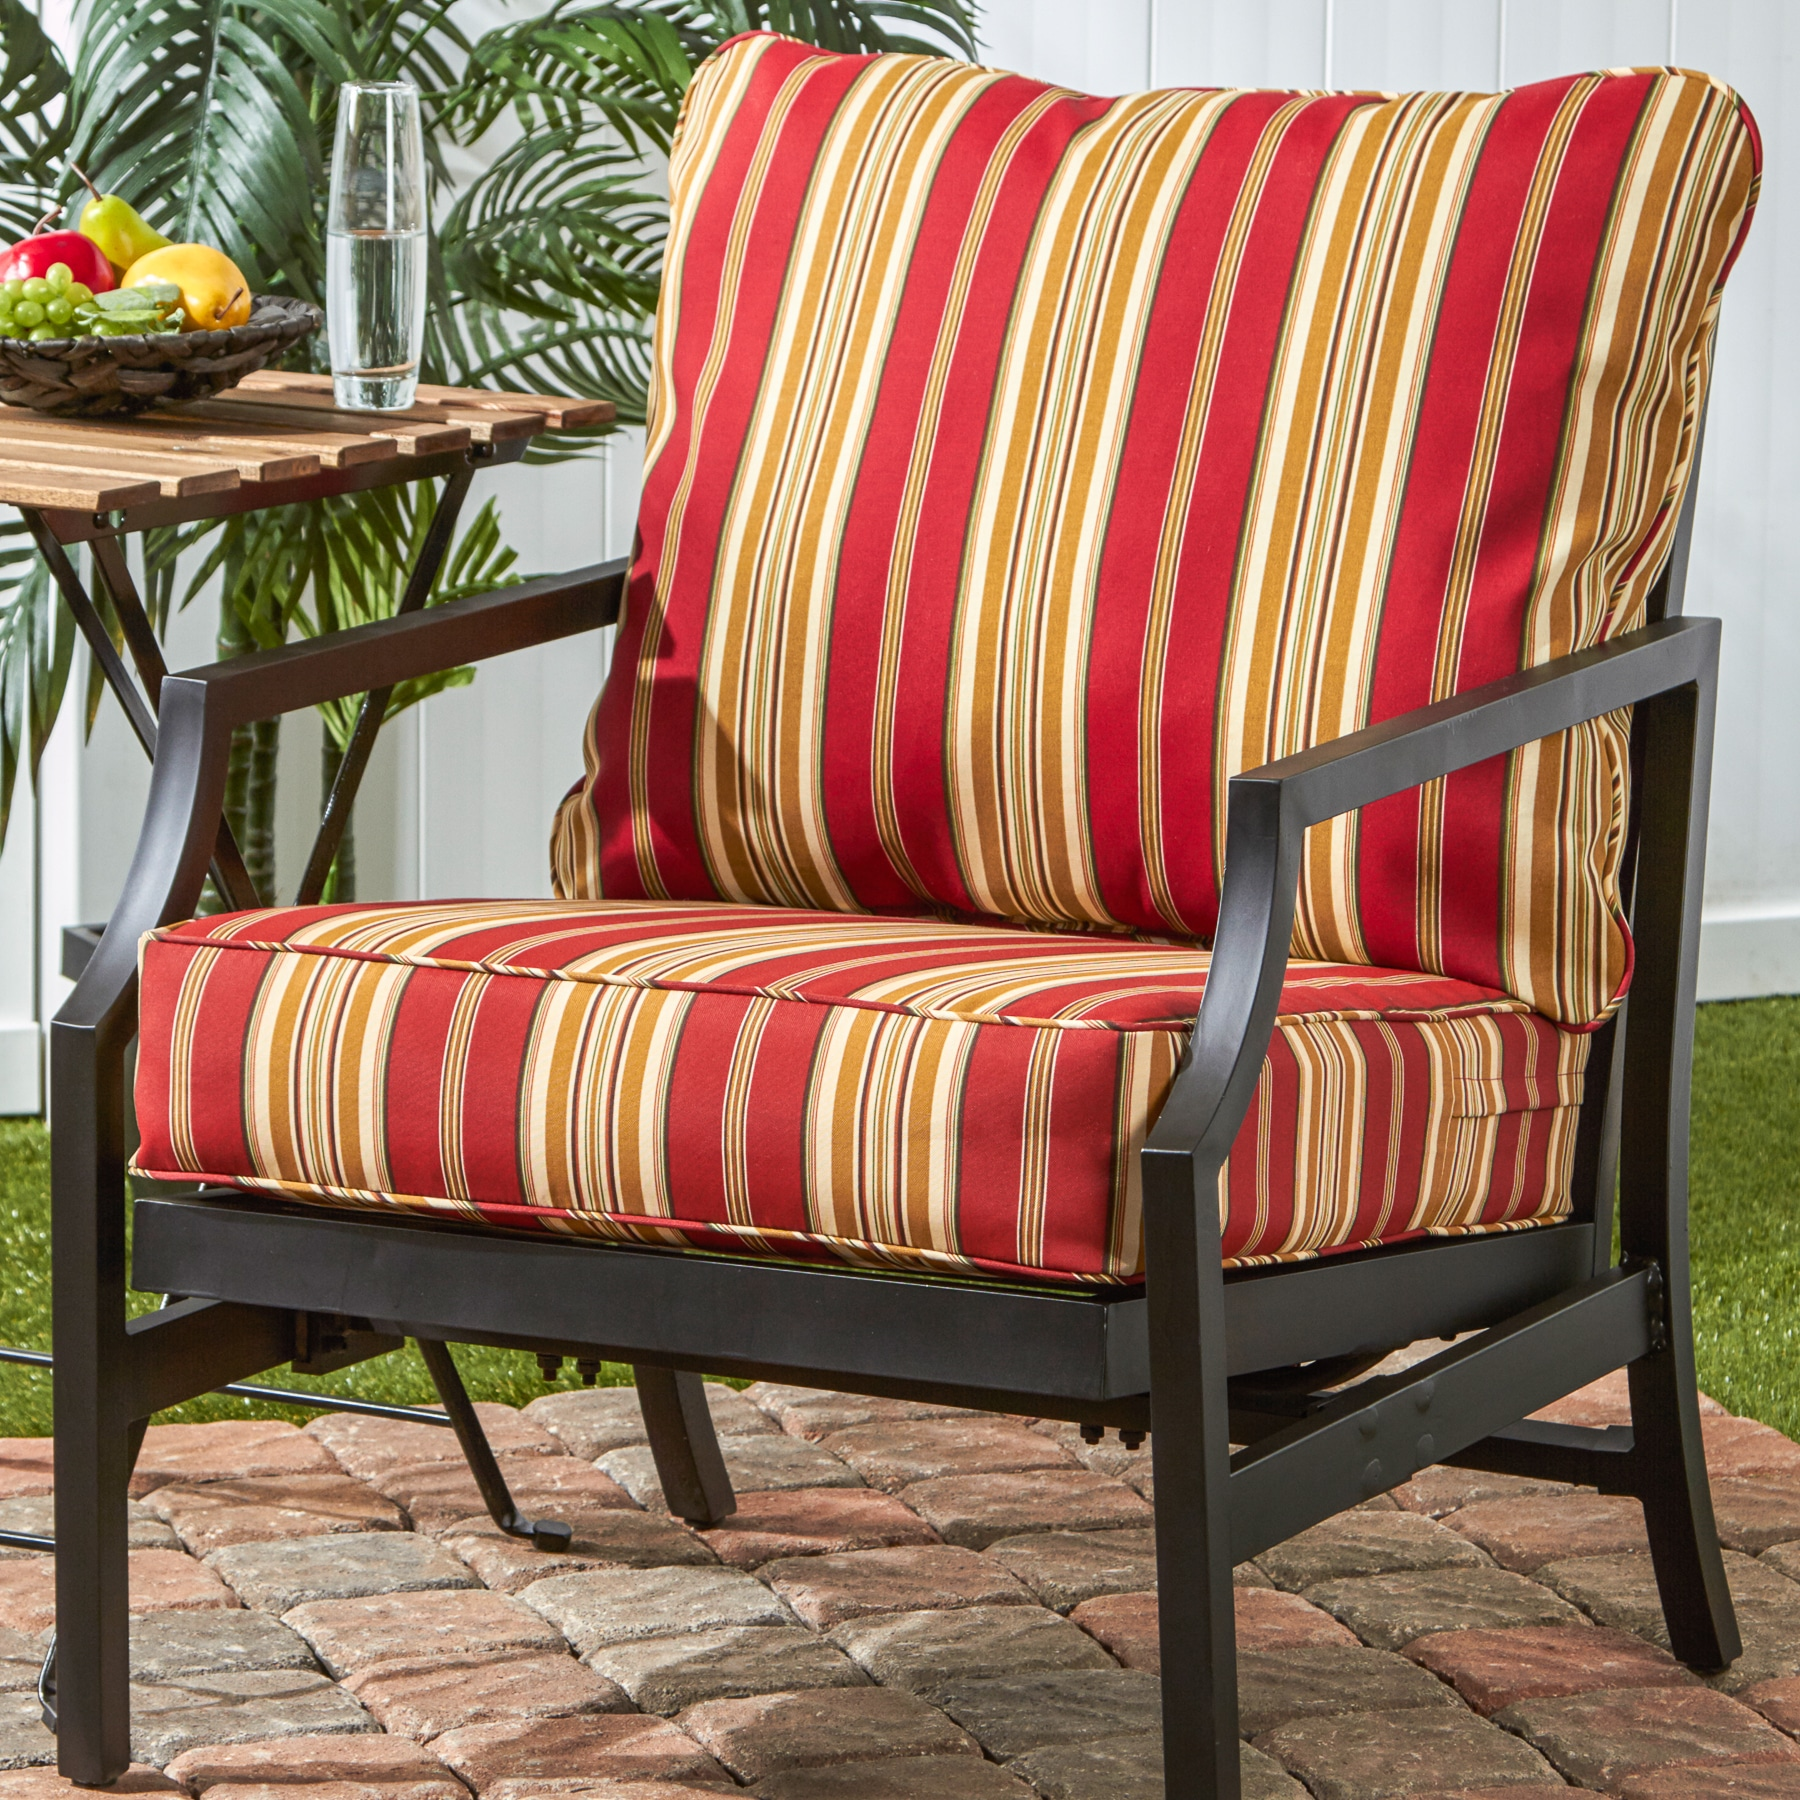 Best Of Patio Furniture Seat Cushions